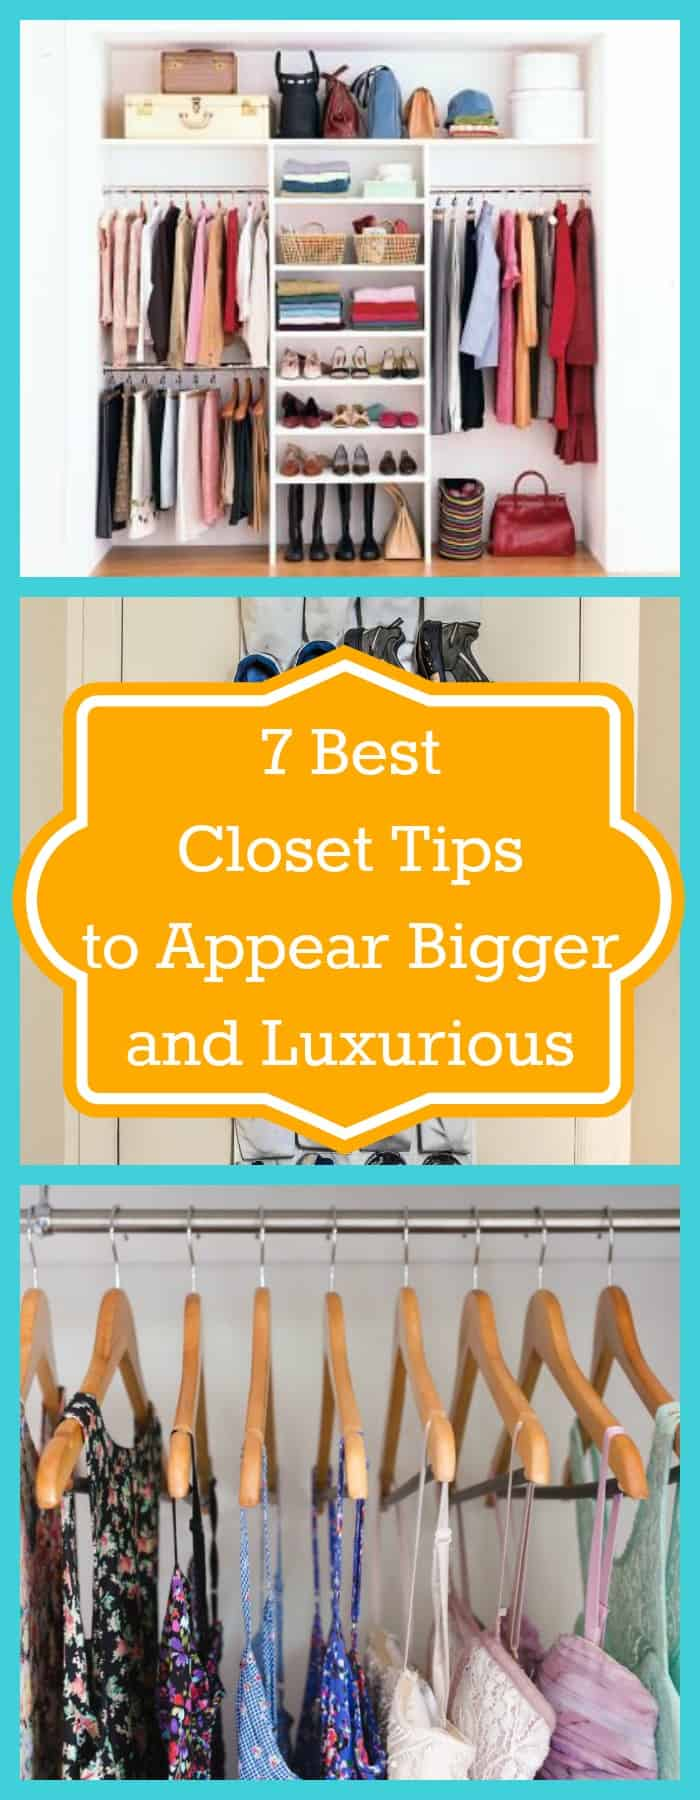 Organization--7 Best Closet Tips to Appear Bigger and Luxurious--The Organized Mom